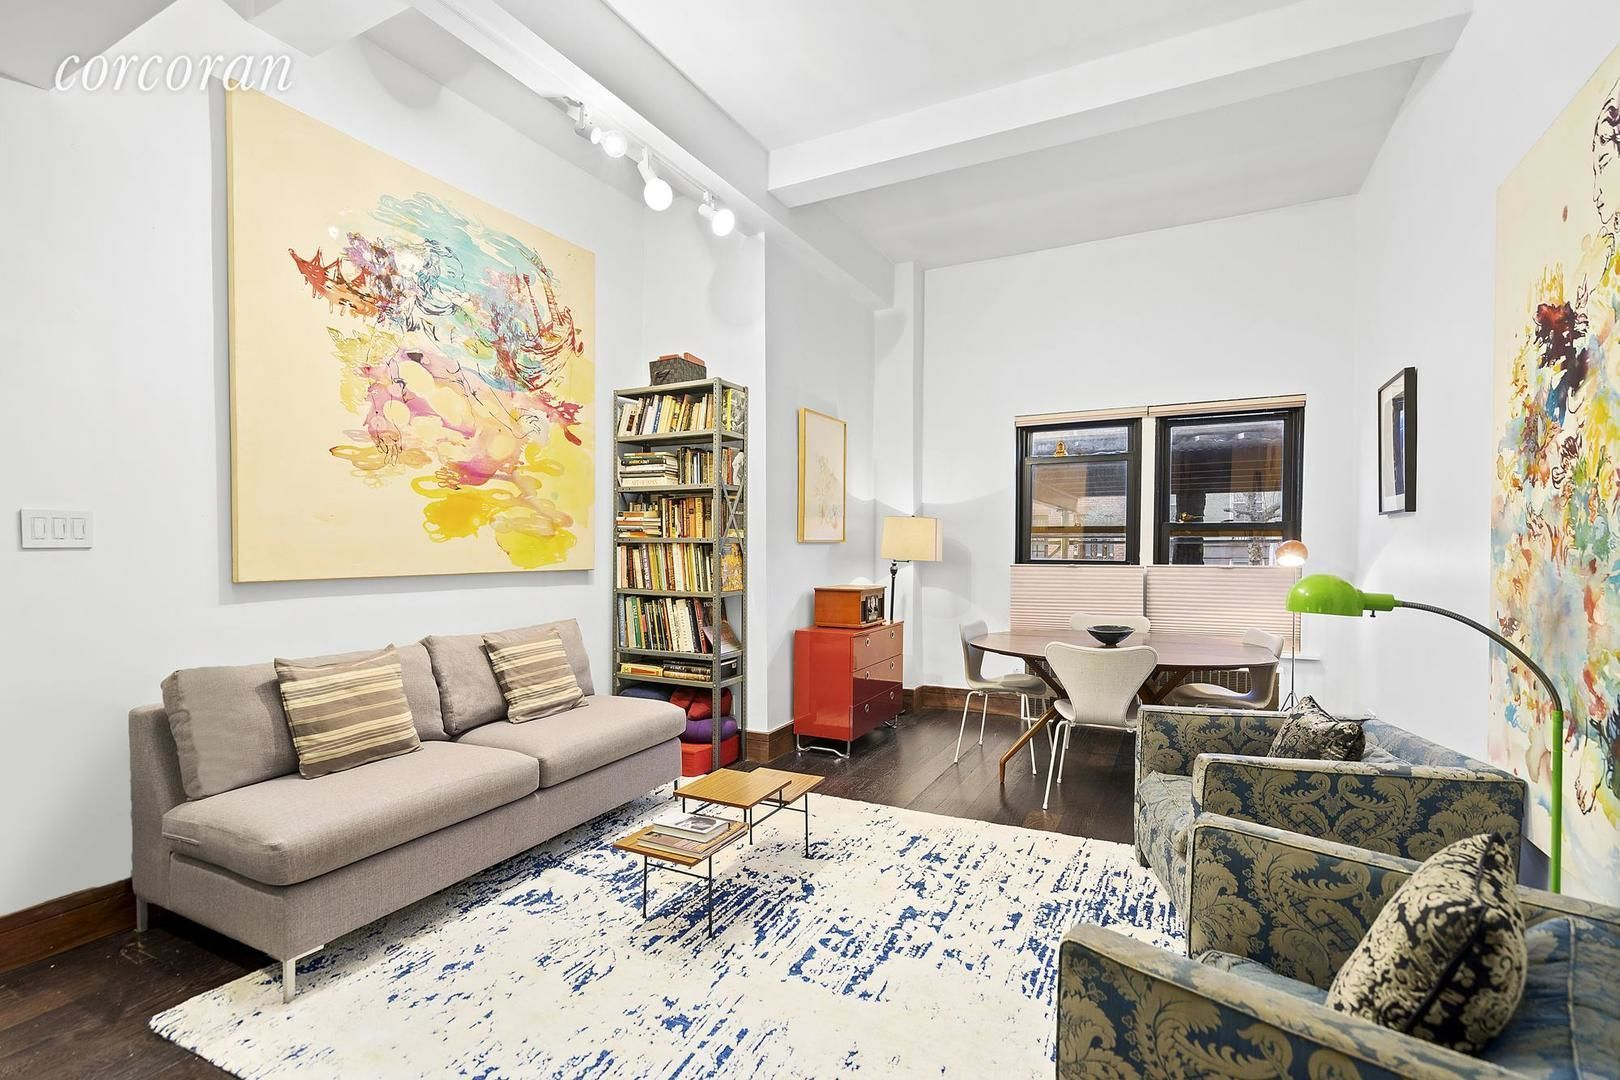 Apartment for sale at 470 West 24th Street, Apt 1A